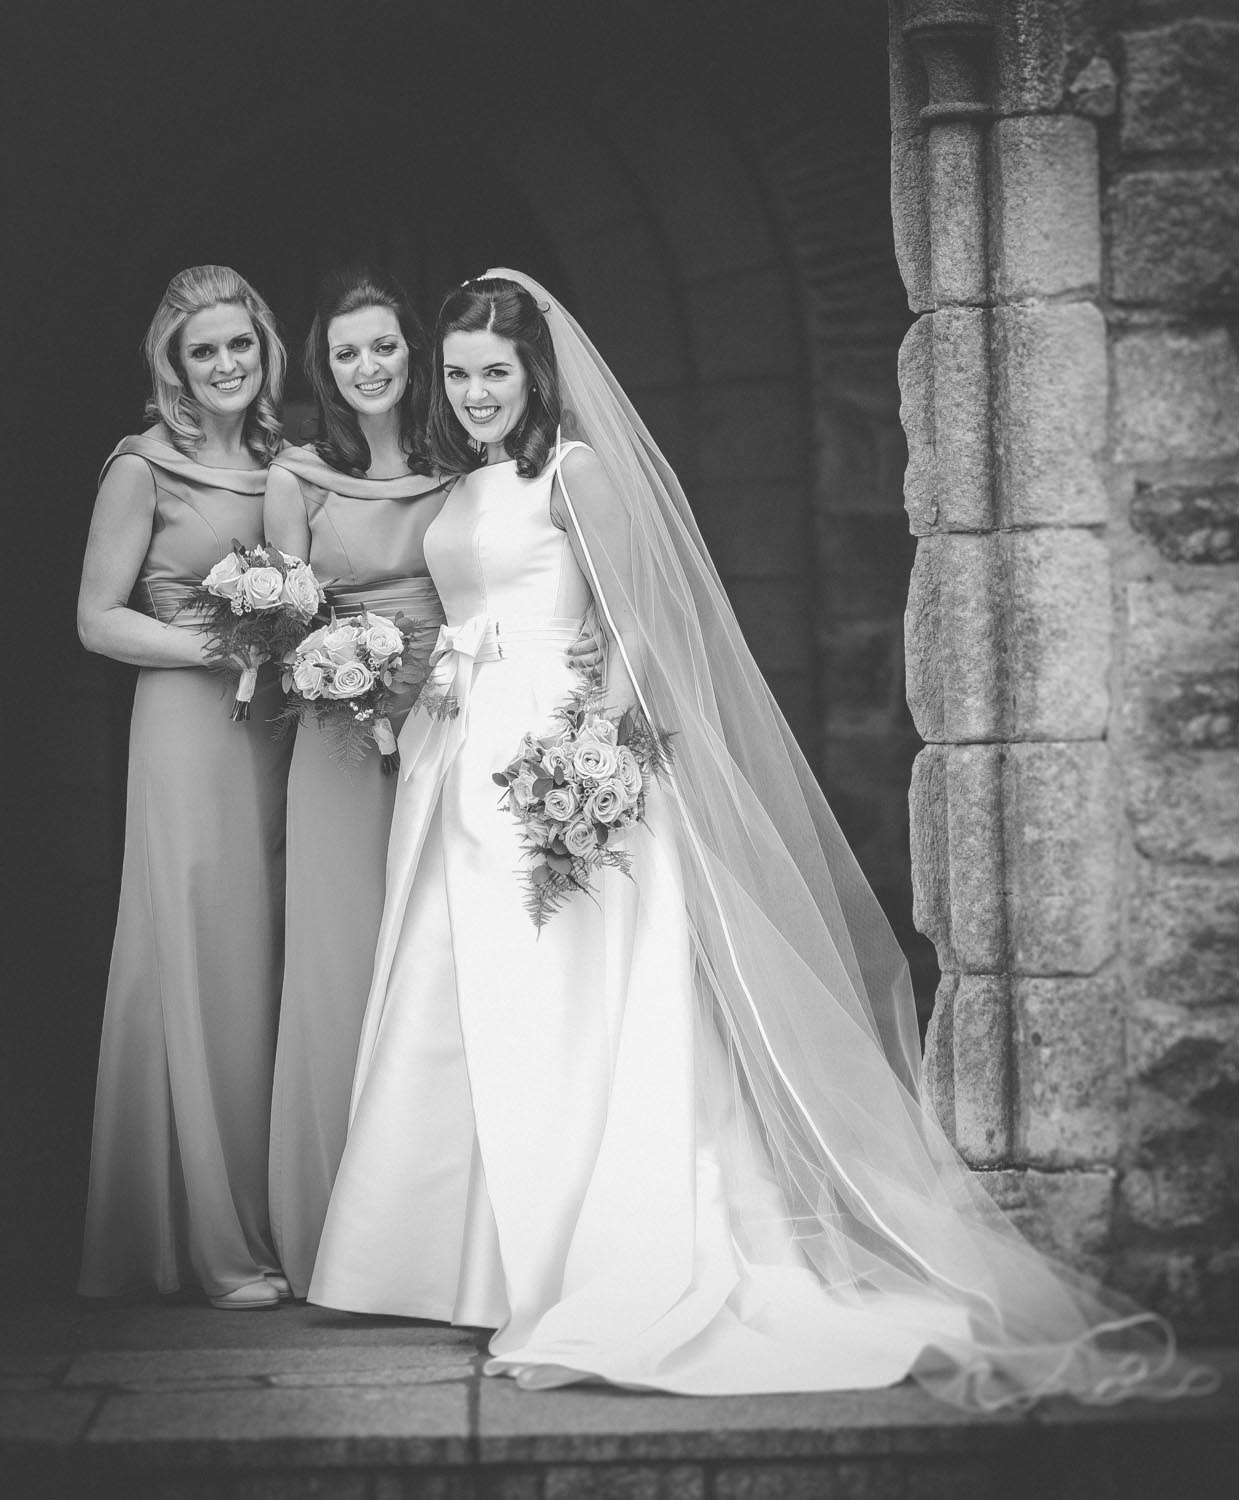 Step House wedding photographer Carlow Borris039.jpg